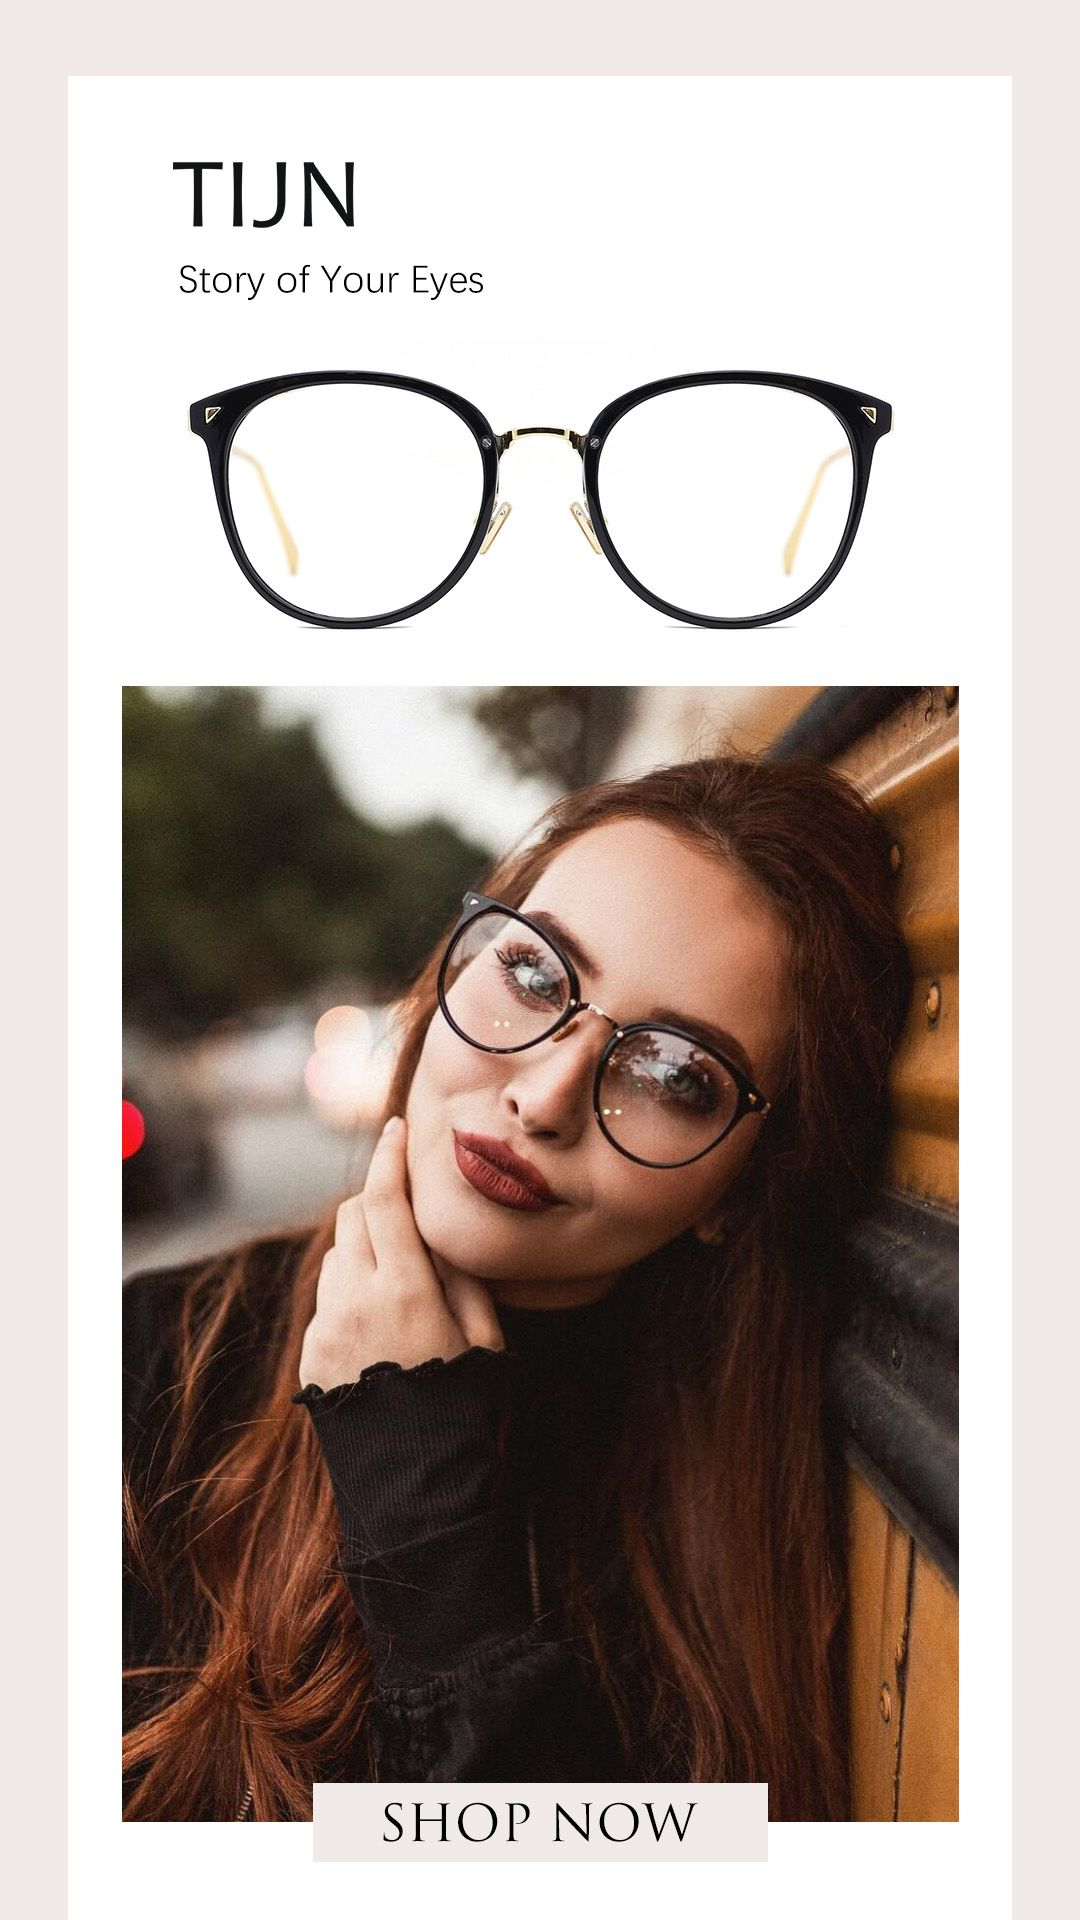 06a7d7f6c5ad Eyewear Trends 2018 Women NEW Fashion. You may get a new look.Top sale  glasses. #eyewear #fashion eyewear #sunglasses#eye